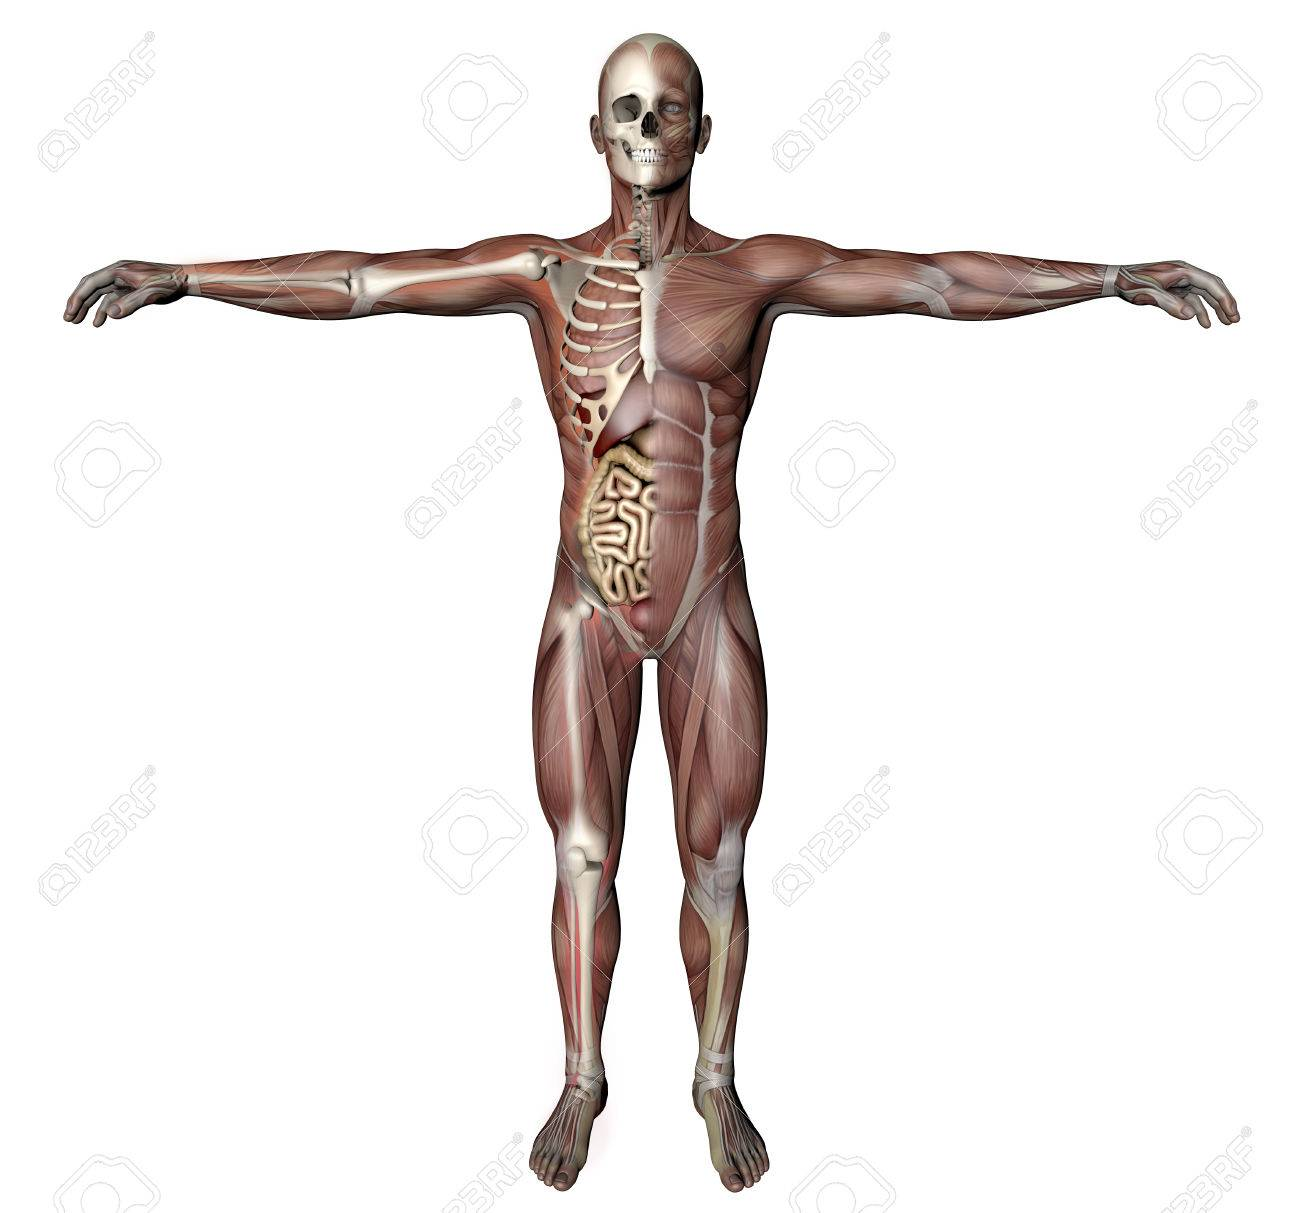 Male Body With Skeletal Muscles And Organs Stock Photo, Picture And ...